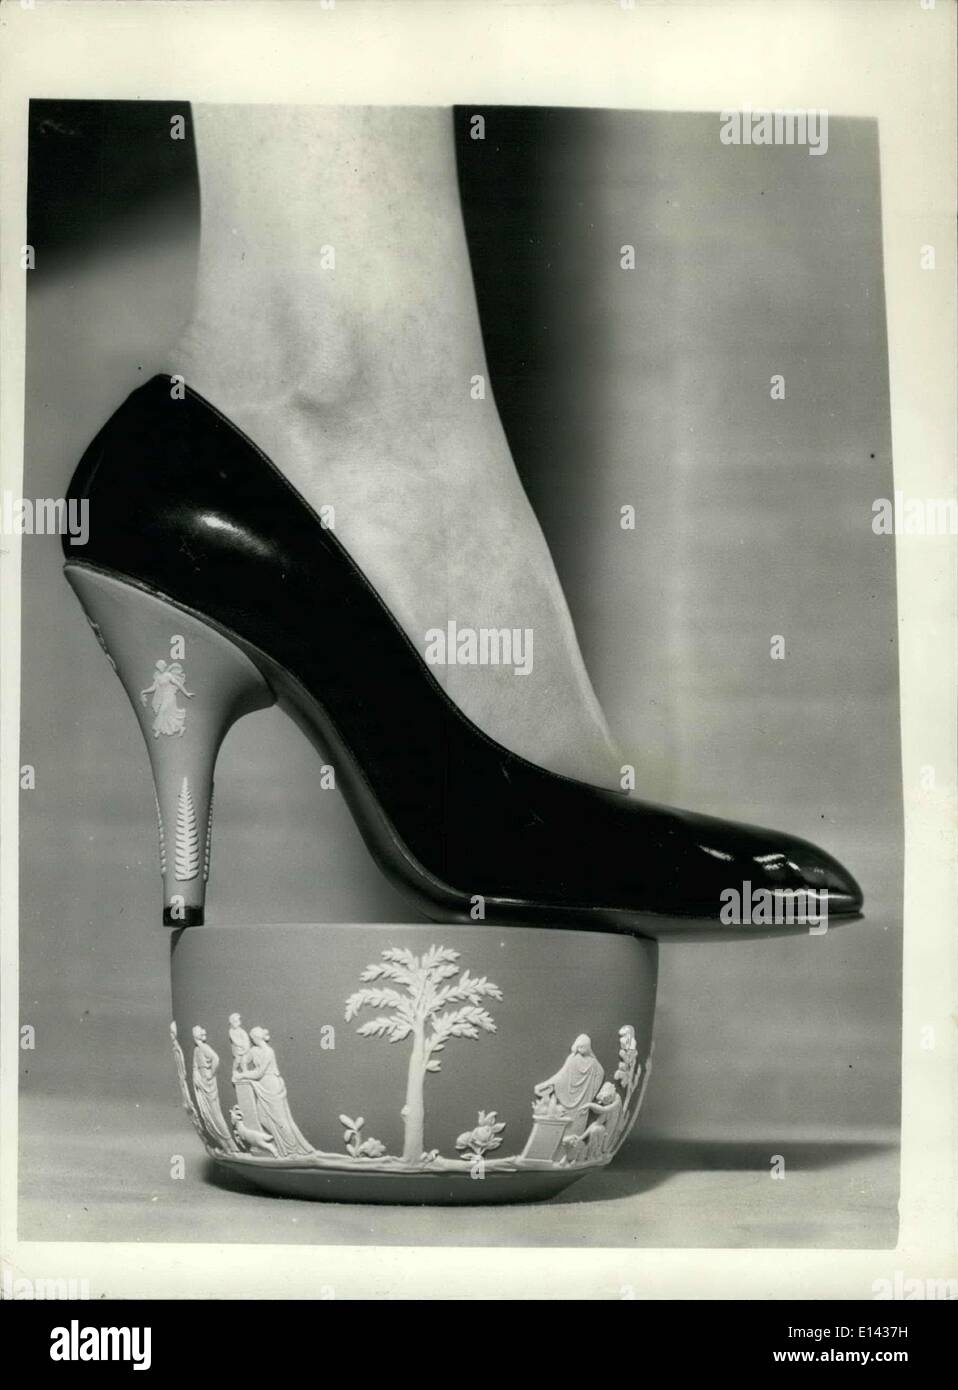 Mar. 31, 2012 - Spring shoes by Rayne. The 'Wedgwood'' collection for export.: Mr. Edward Rayne the famous London show designer - Stock Image